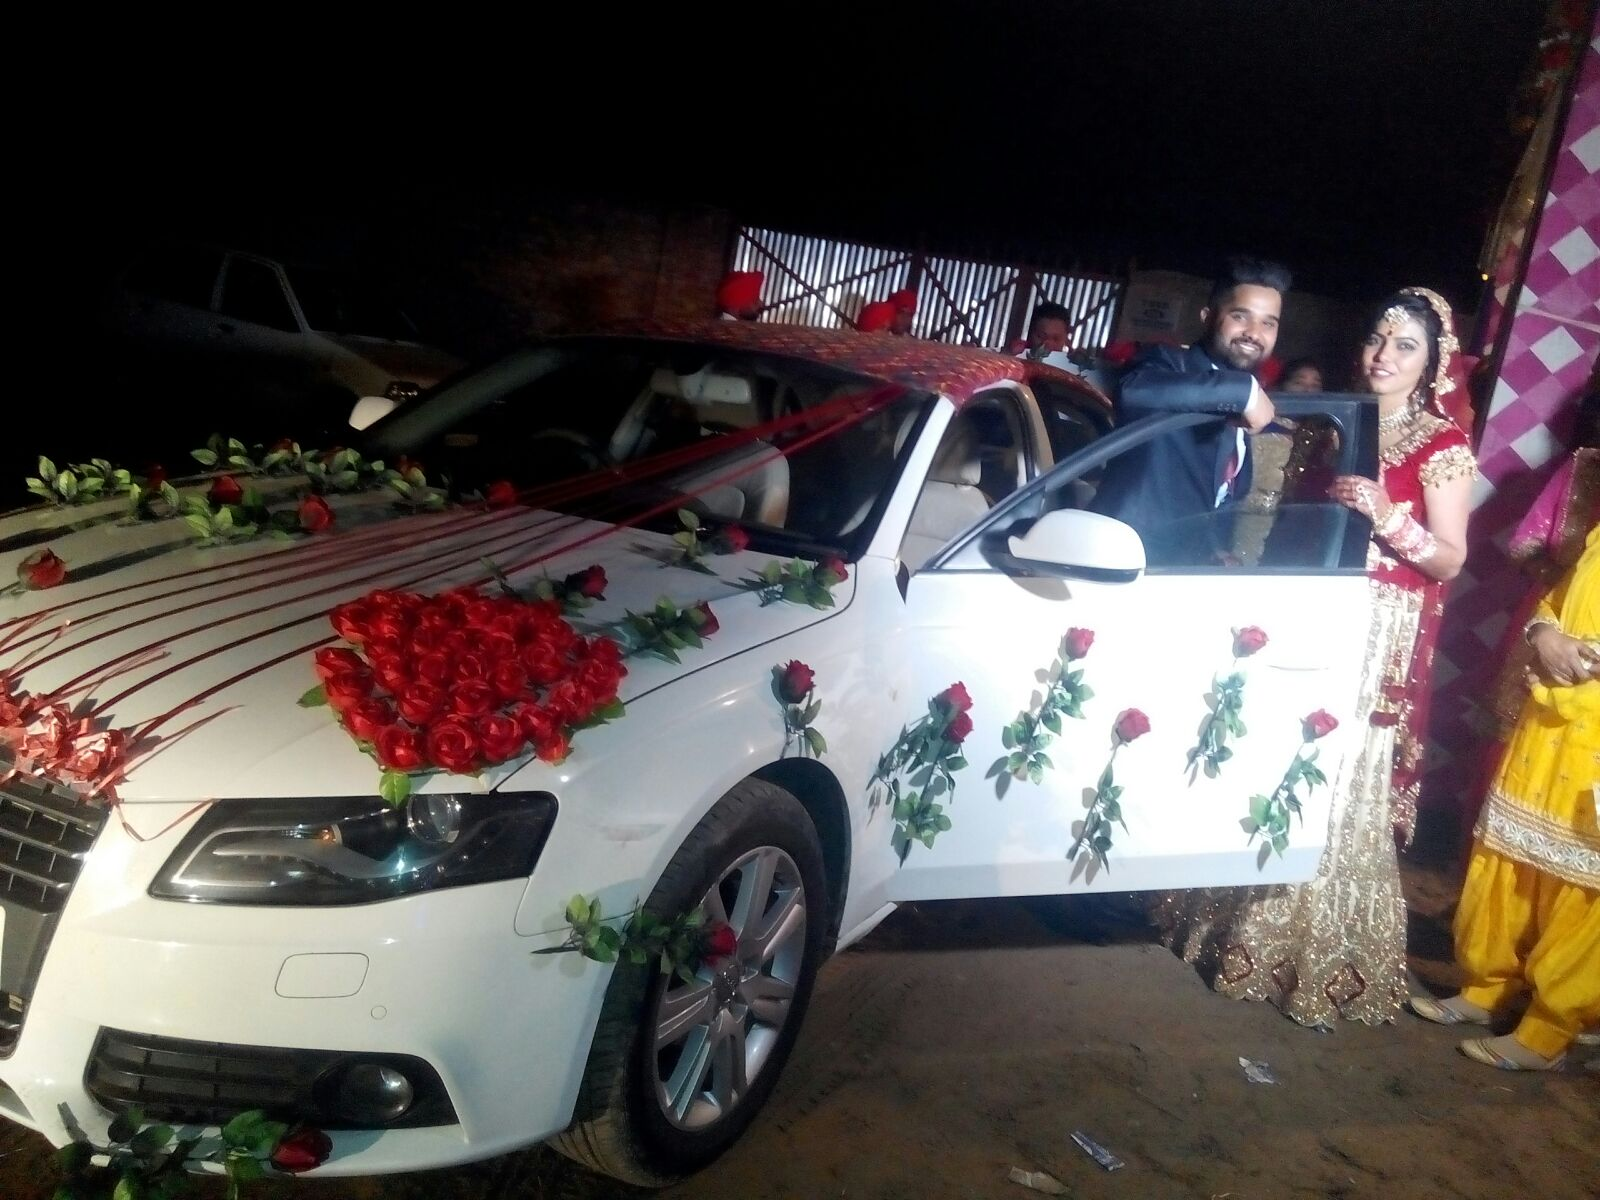 JUST MARRIED SATPAL weds AMANDEEP SATPAL weds AMANDEEP (17th January 2016) for wedding rental in Punjab, India